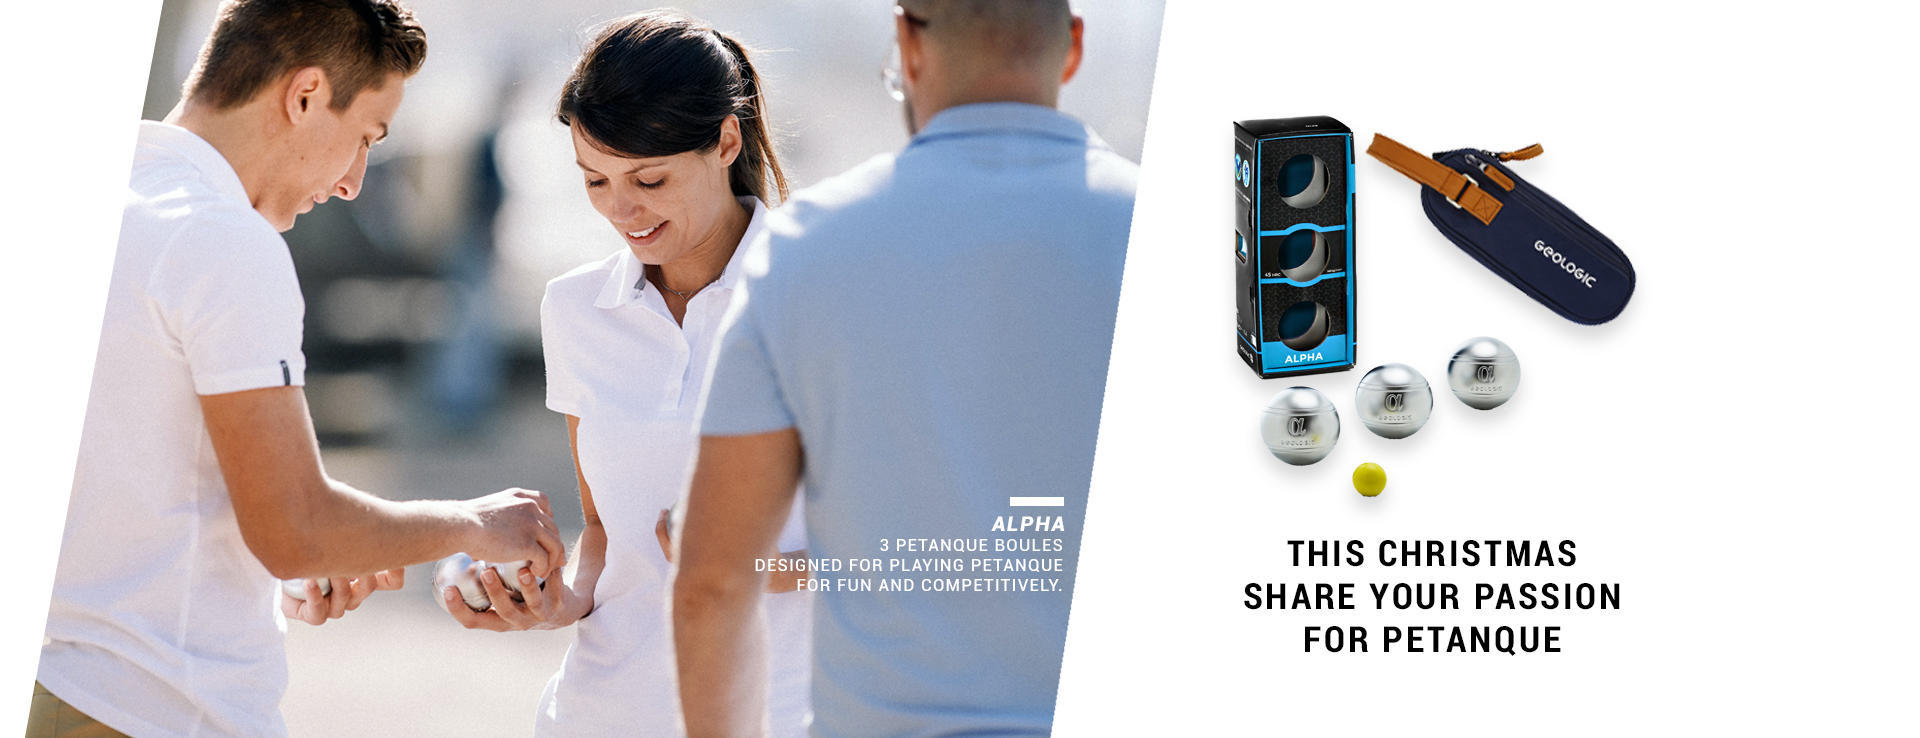 This Christmas share your passion for petanque